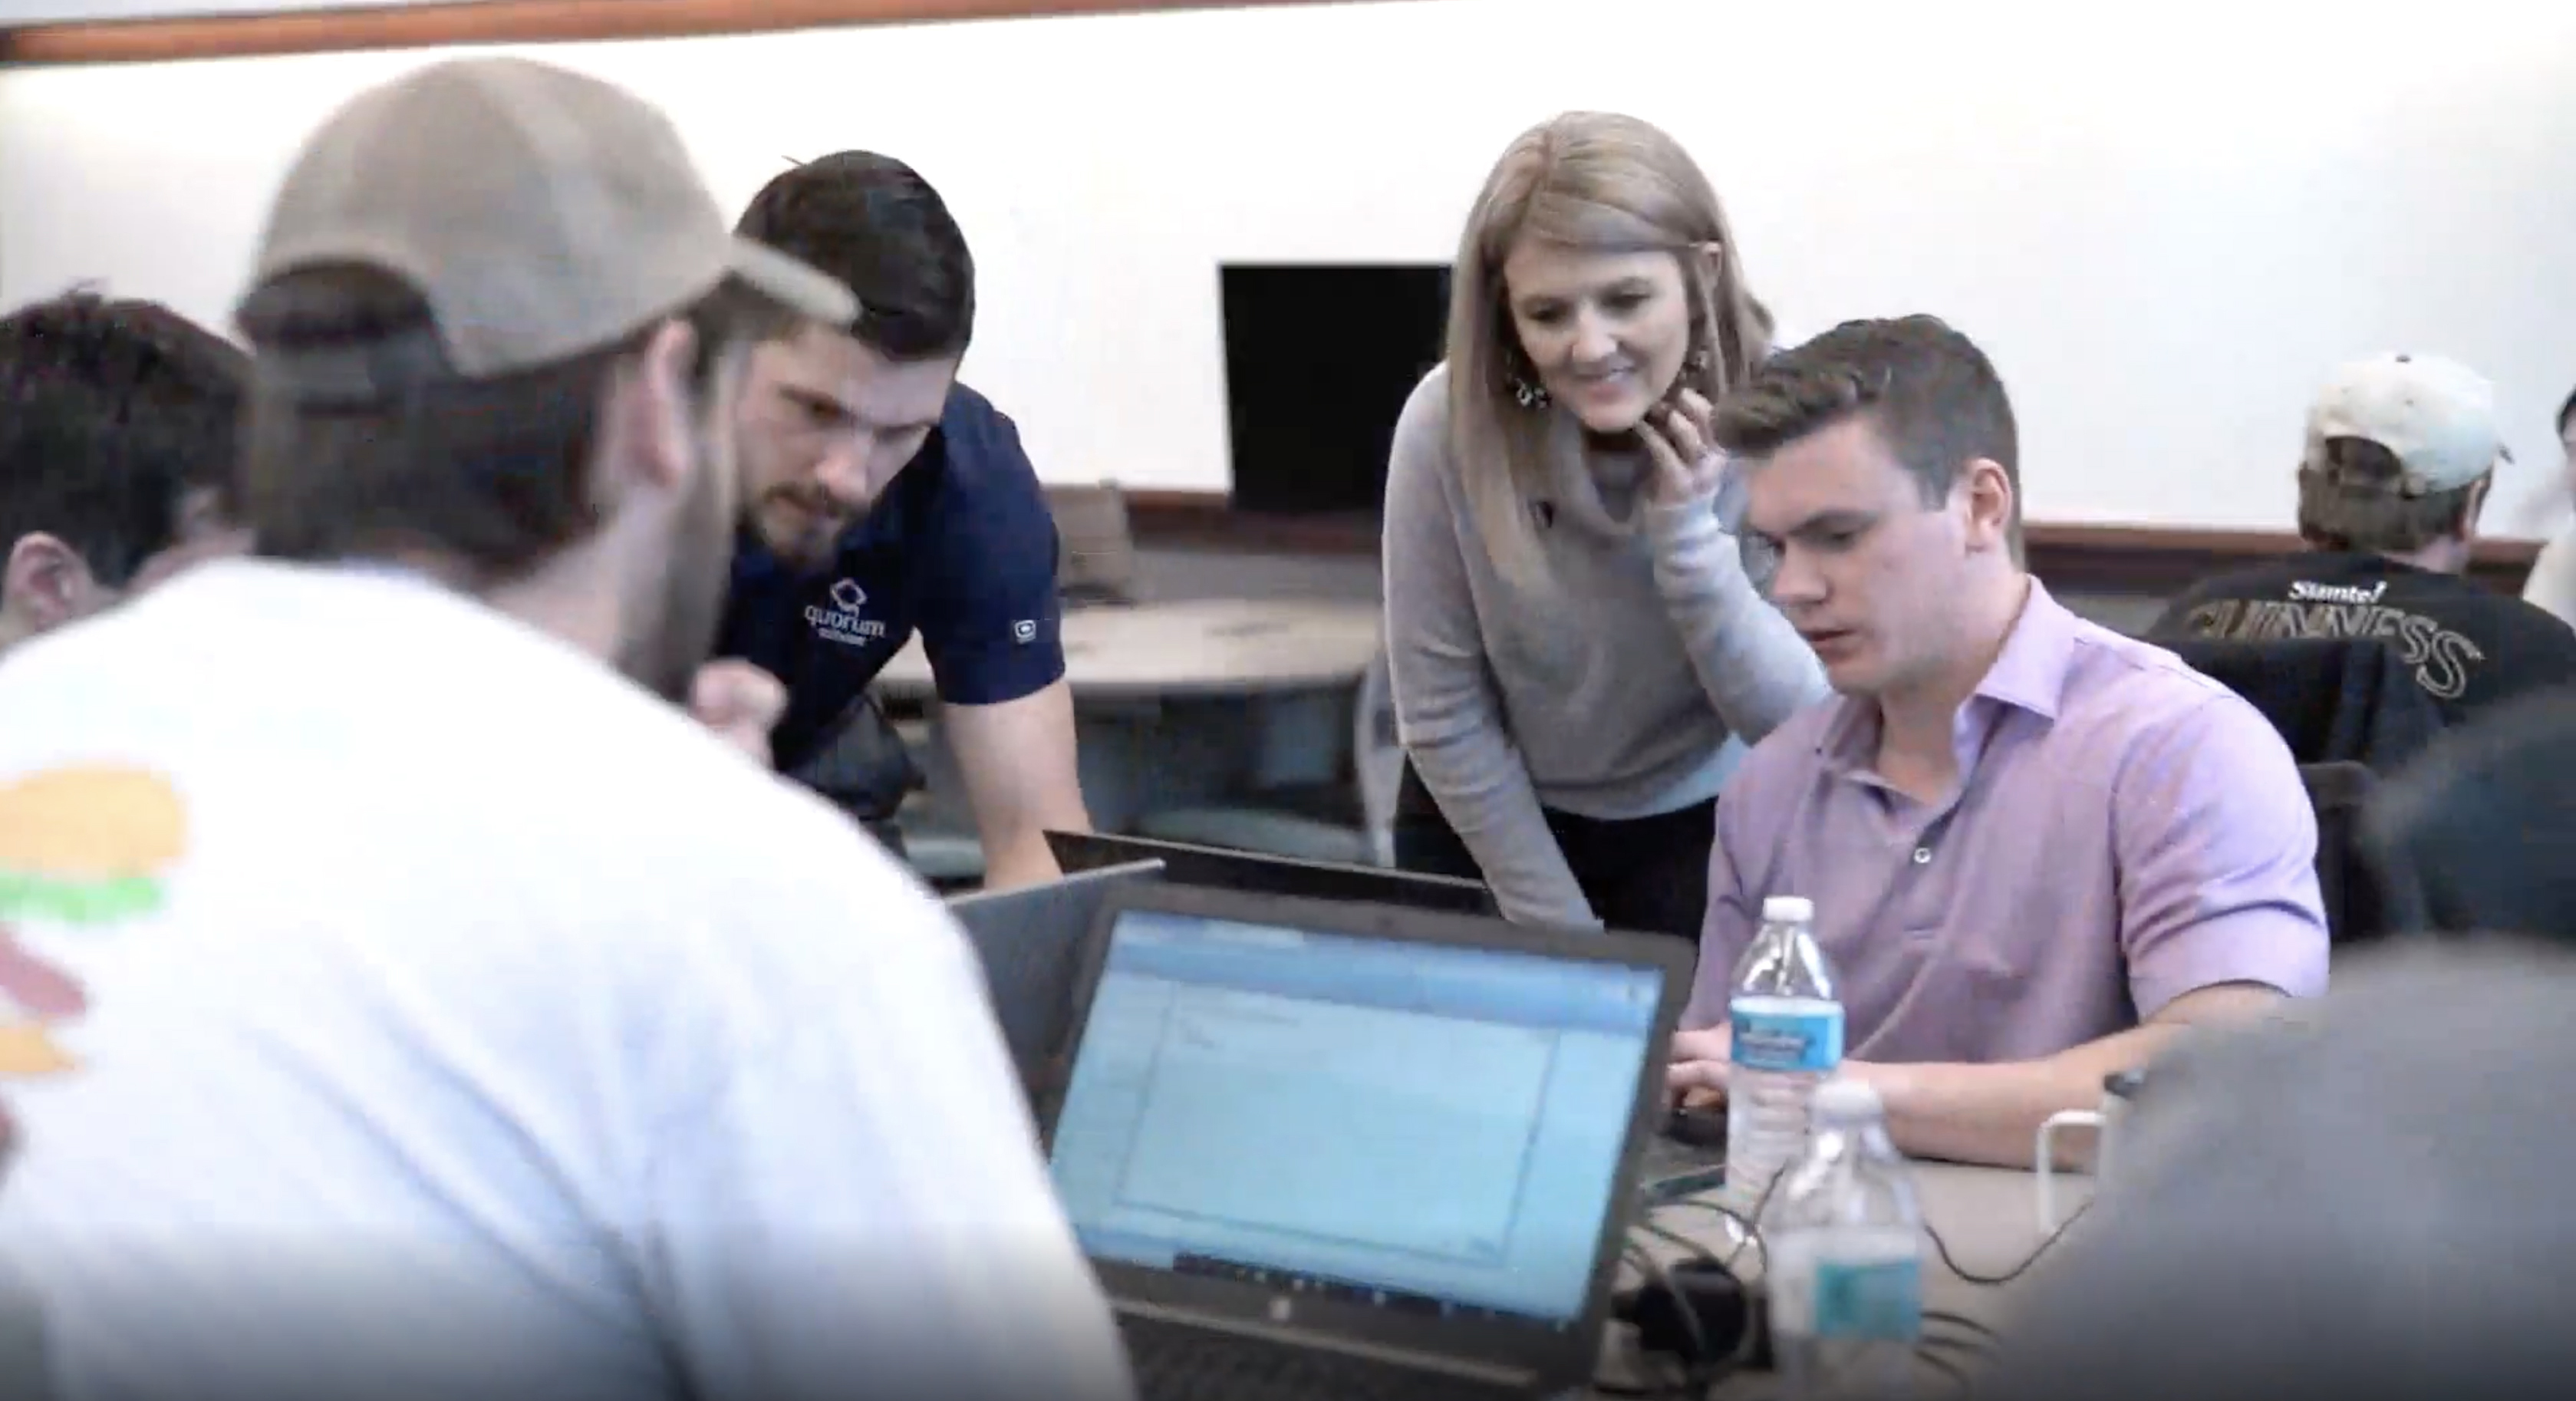 Quorum Donates Land Management Software to the Texas Tech University Rawls College of Business